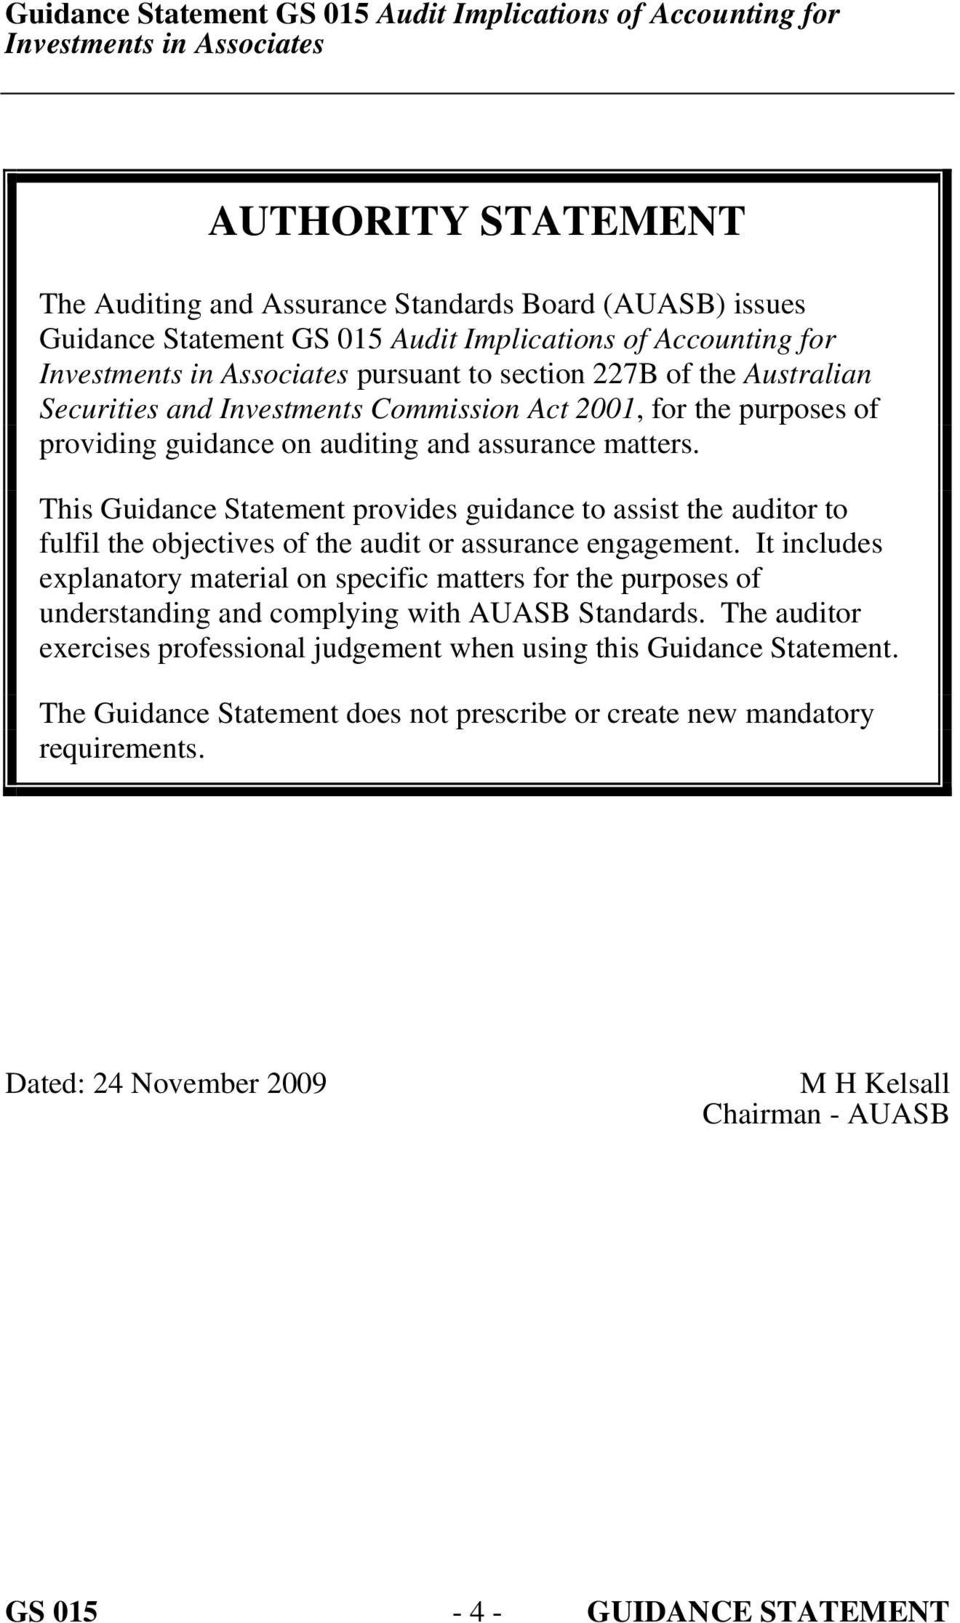 This Guidance Statement provides guidance to assist the auditor to fulfil the objectives of the audit or assurance engagement.